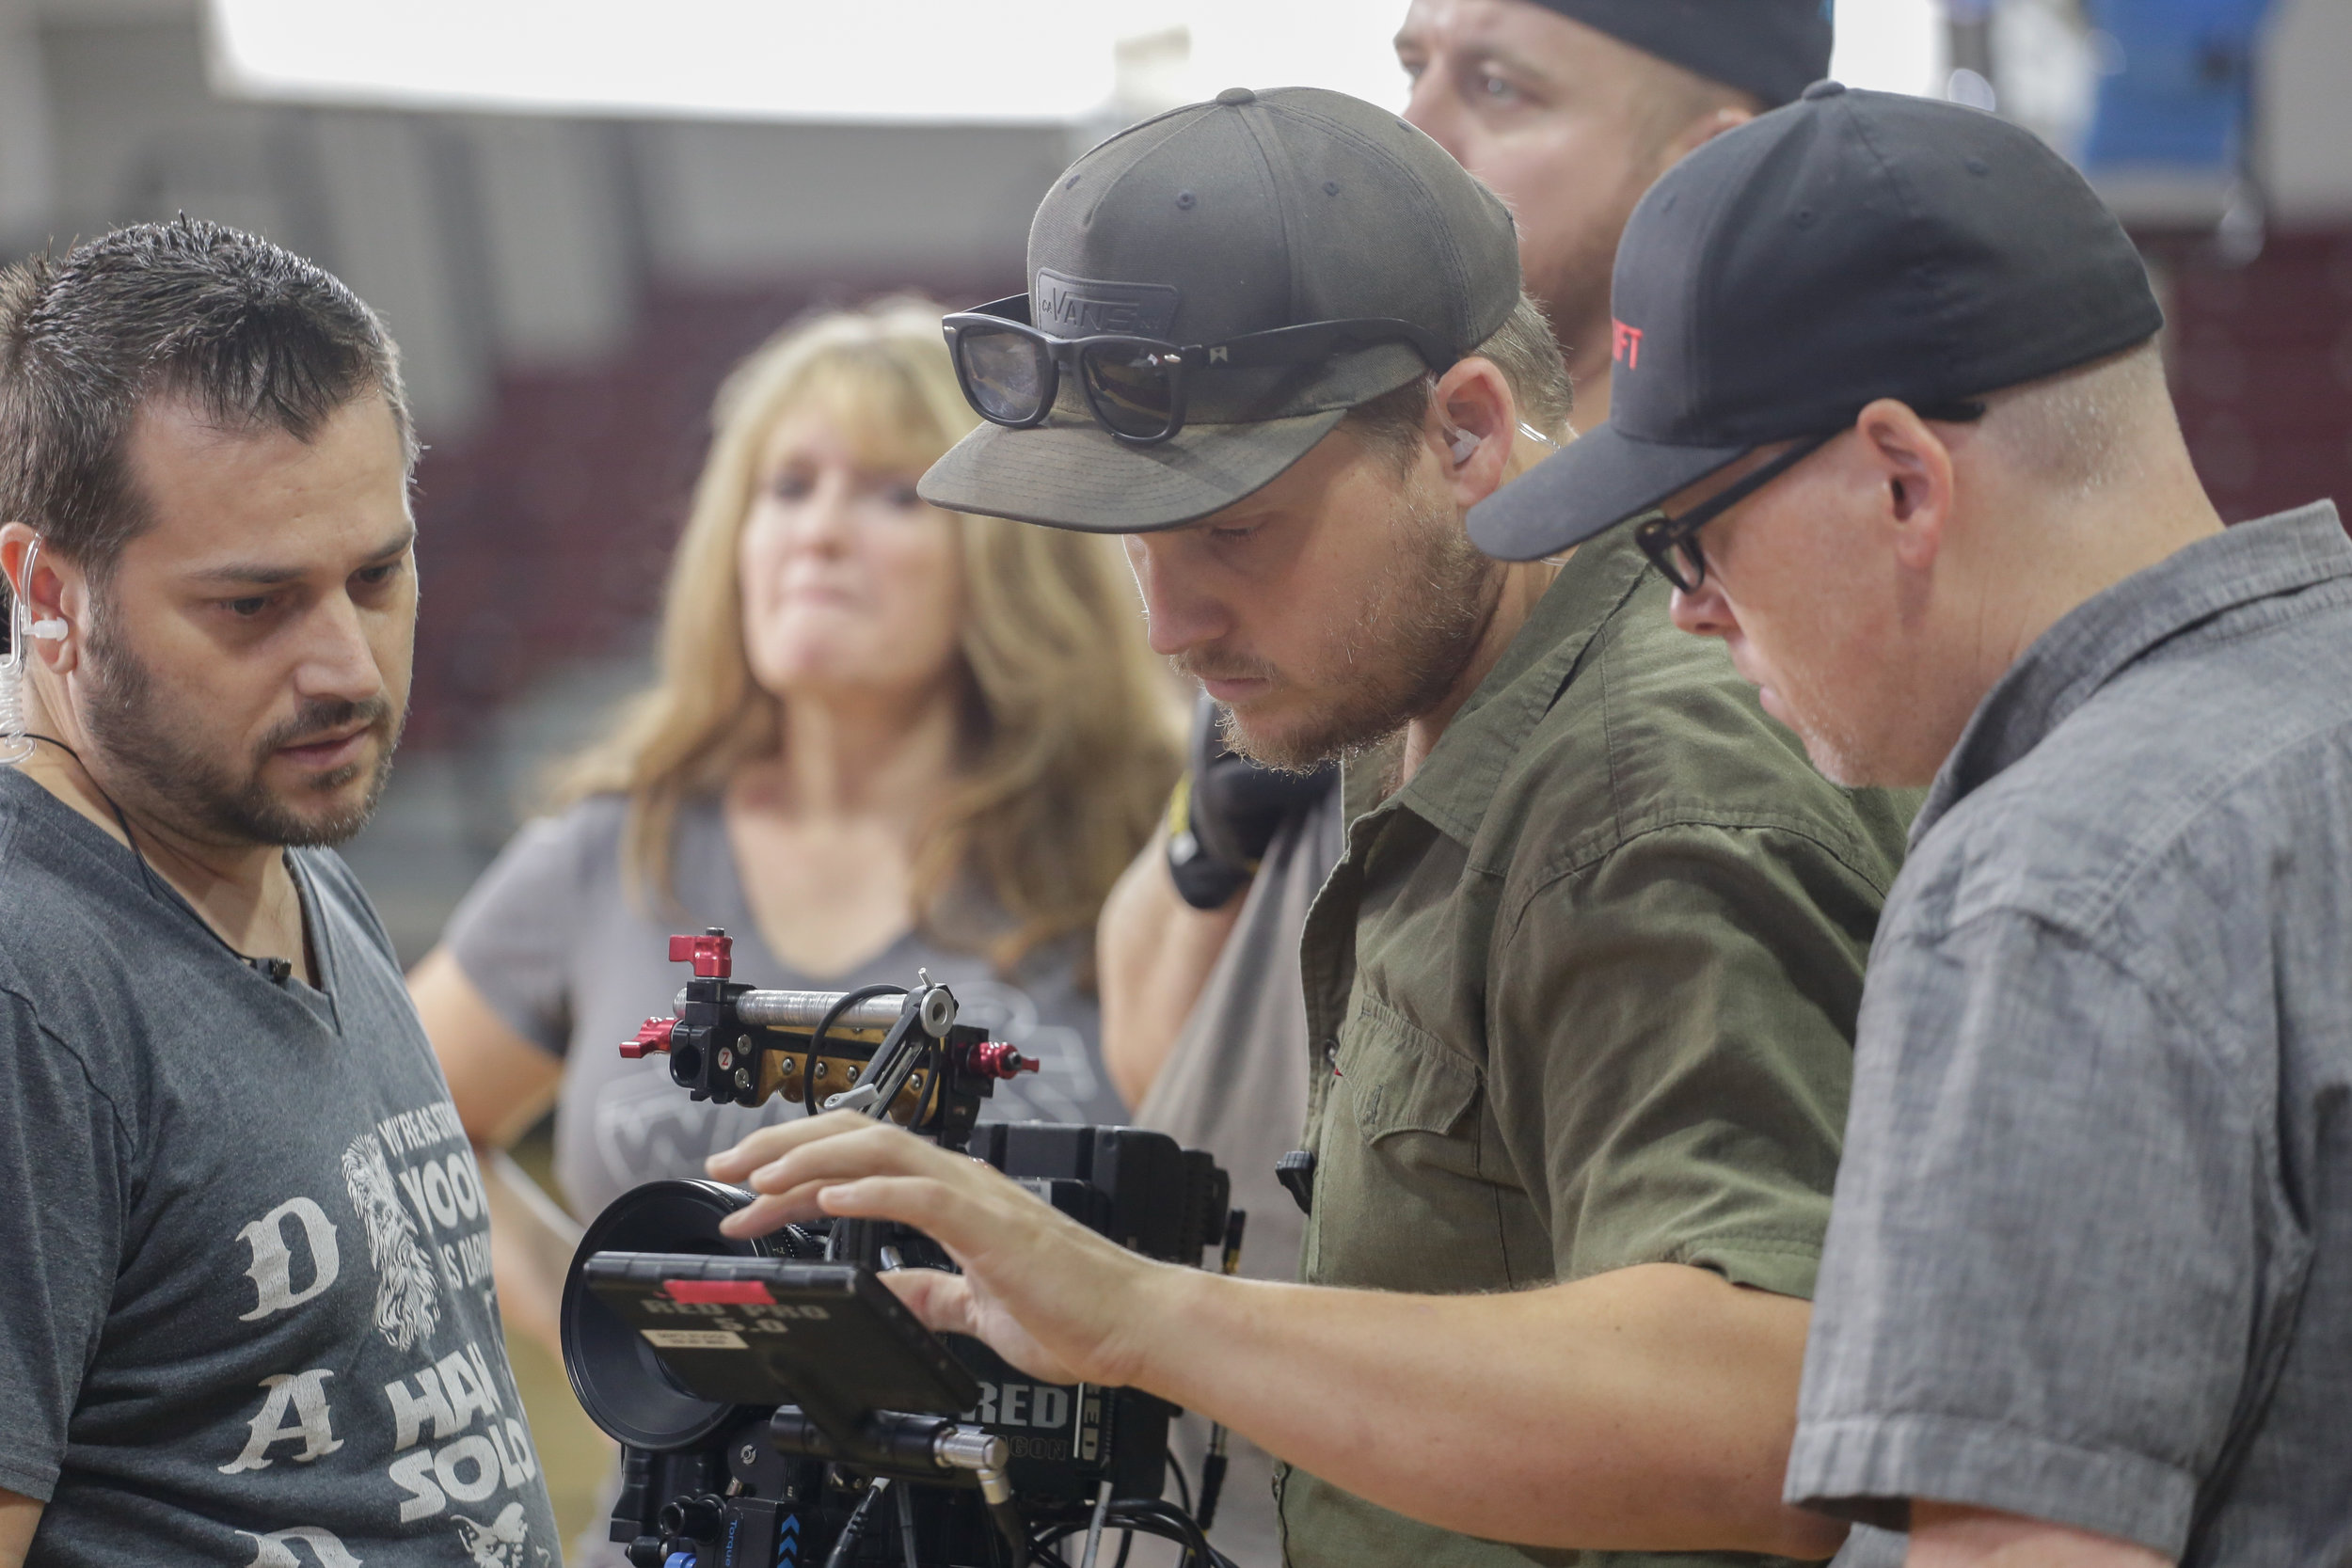 Director of Photography Kyle Gentz checks the frame while 1st A.C. Troy Ruff, Assistant Production Designer Renee Mason, and I stand by in awe of Kyle's finely trimmed nails. Photo Credit: Cody Allred